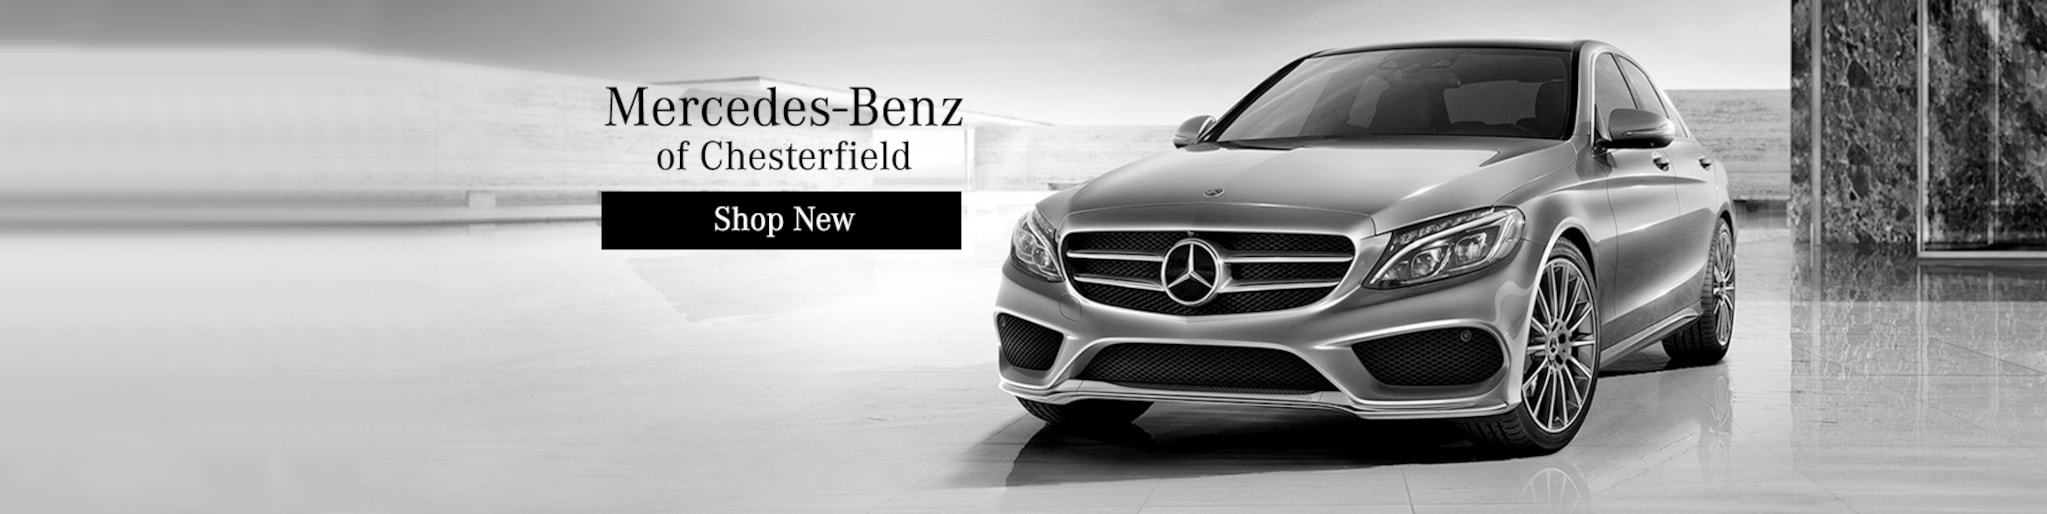 Mercedes benz chesterfield serving st louis mo mercedes for Mercedes benz dealer st louis